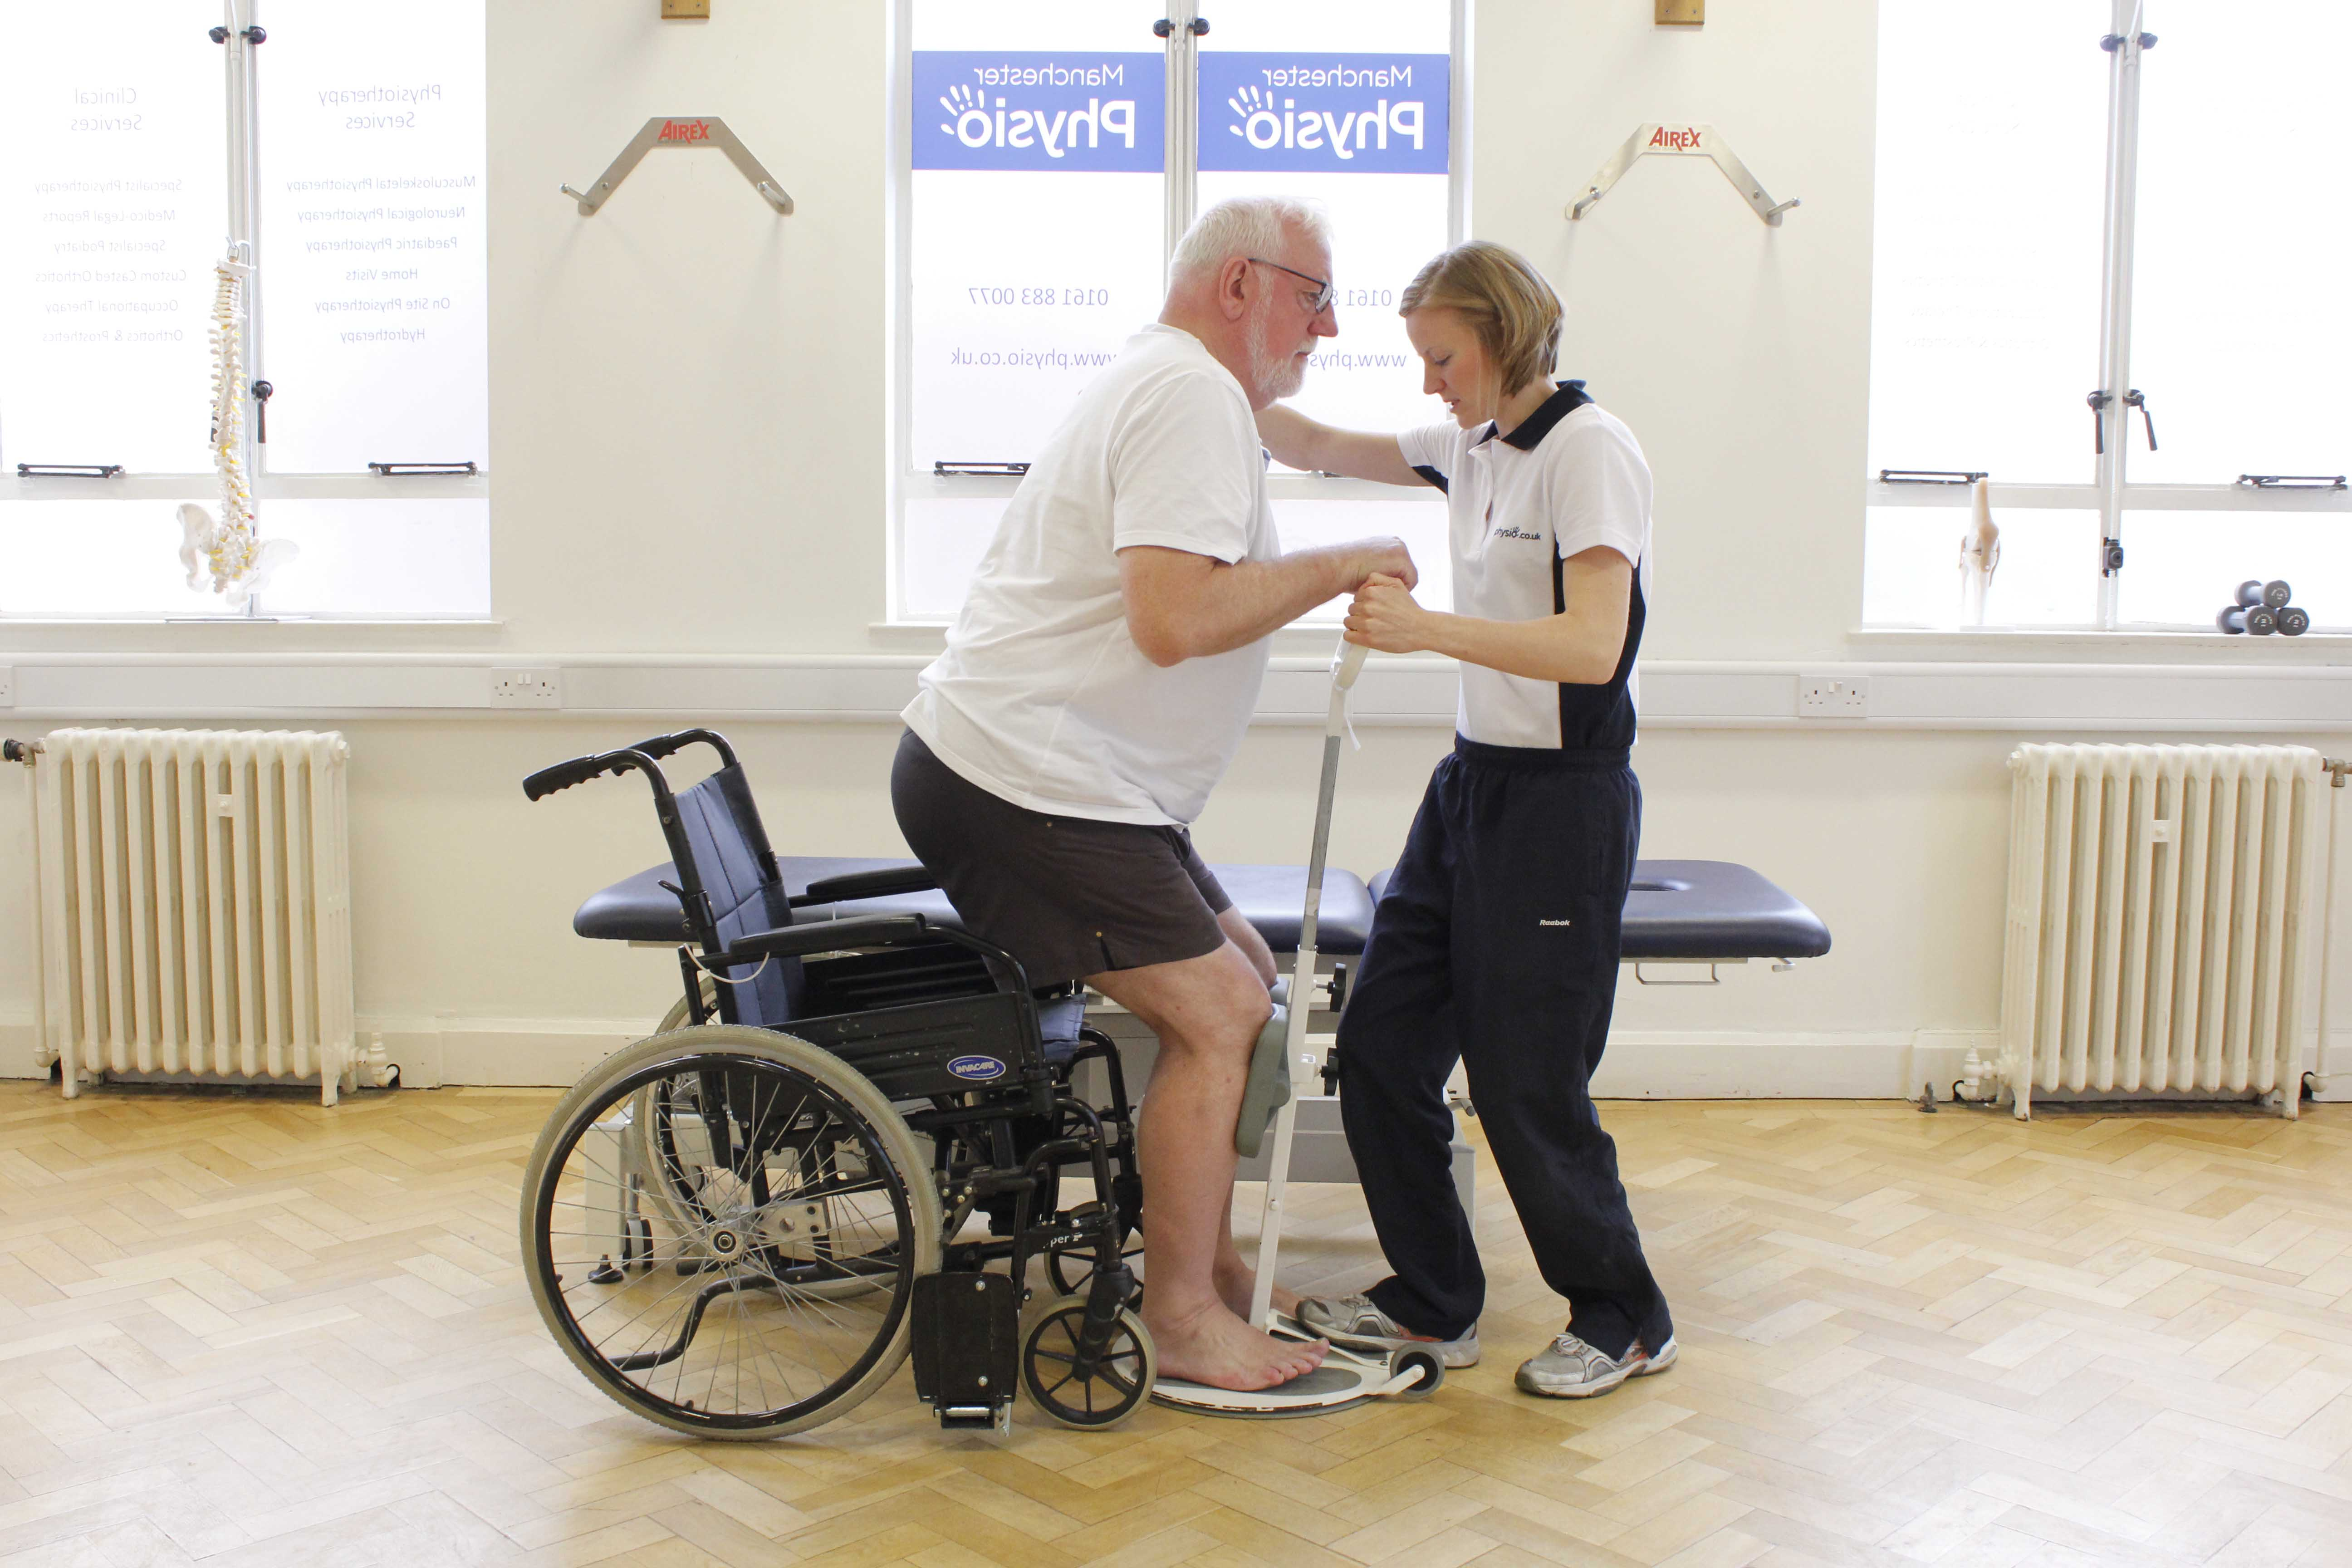 Practice of transfers with assistance of specialist physiotherapist